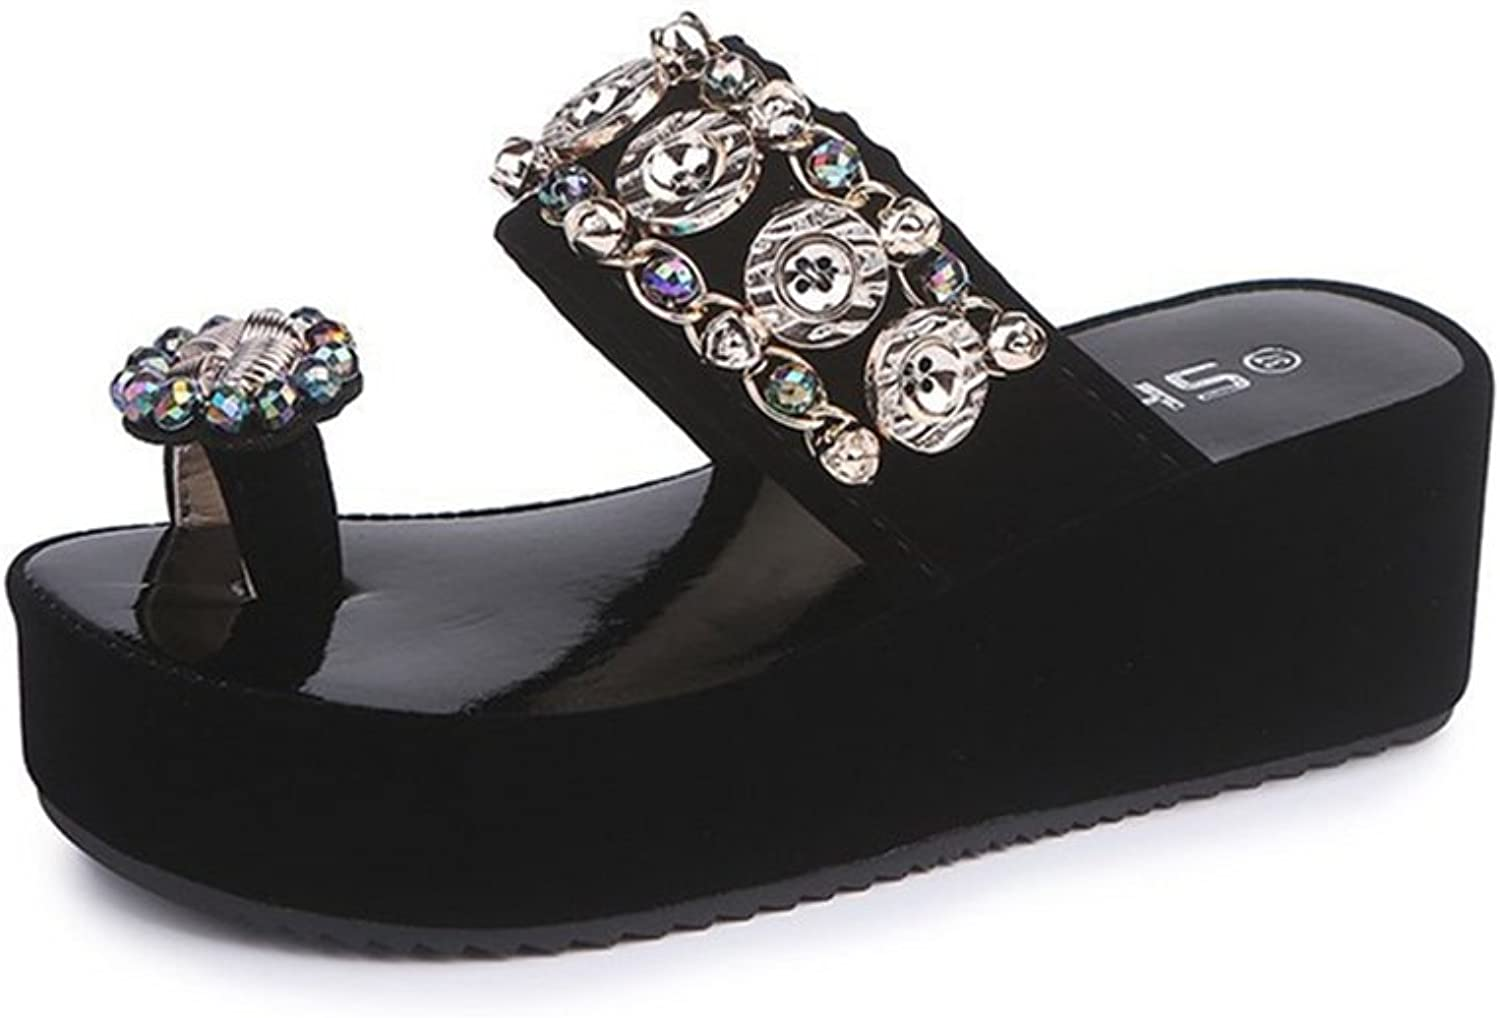 GIY Women's Platform Slides Sandals with Bling Toe Ring Chunky Heel Anti-Slip Summer Beach Wedges Sandals